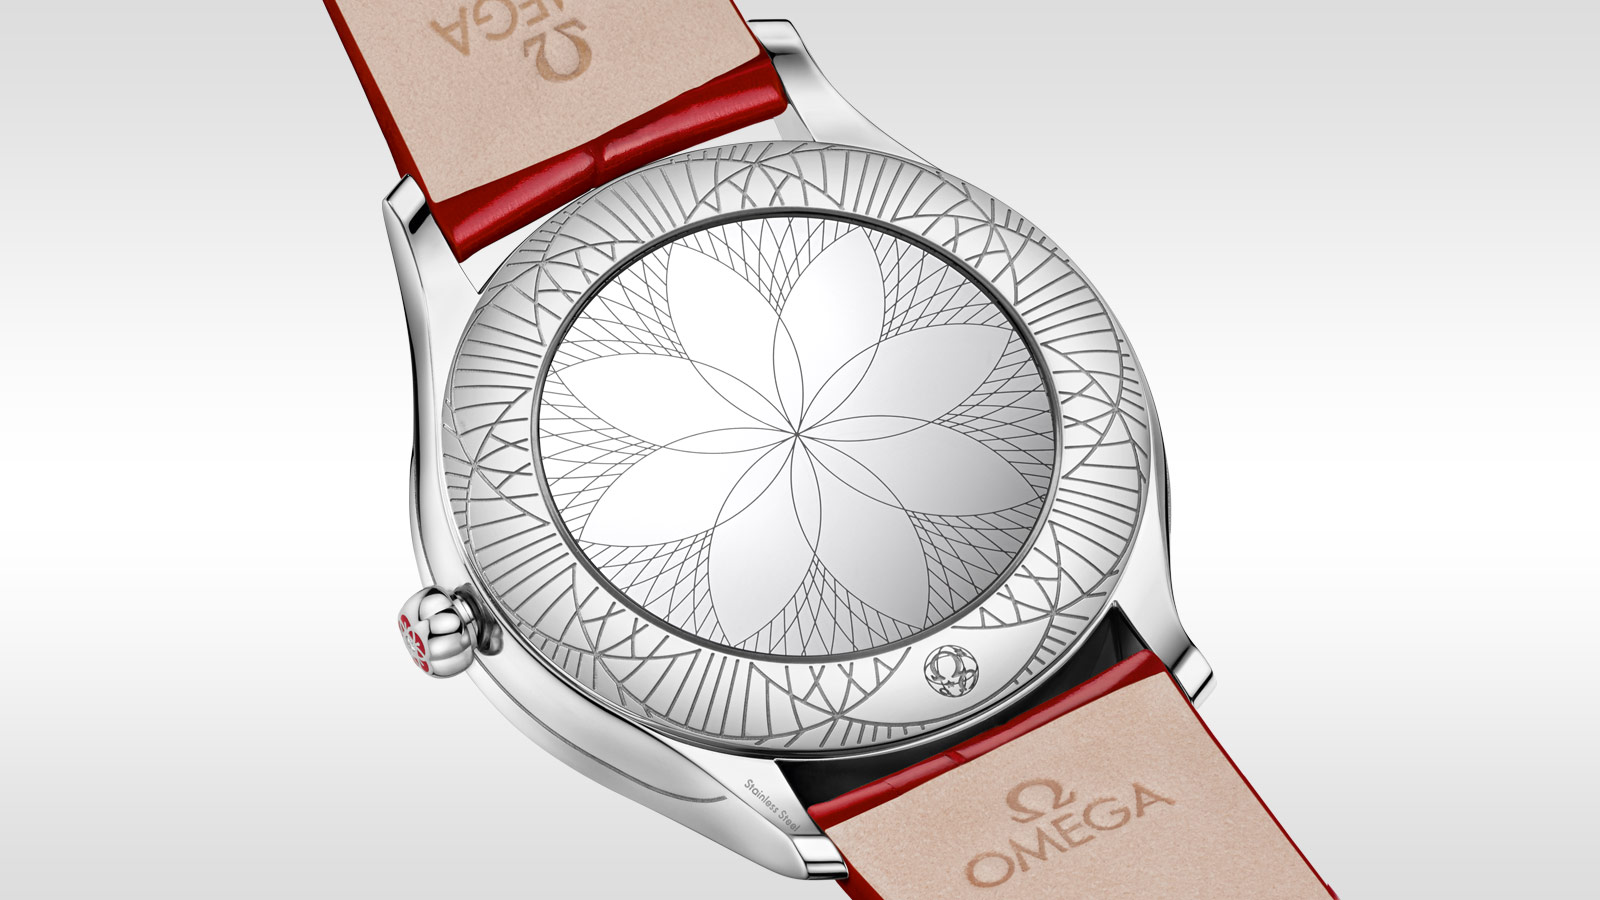 De Ville TRÉSOR Trésor Quartz 36 mm - 428.18.36.60.04.002 - Visualizzare 3